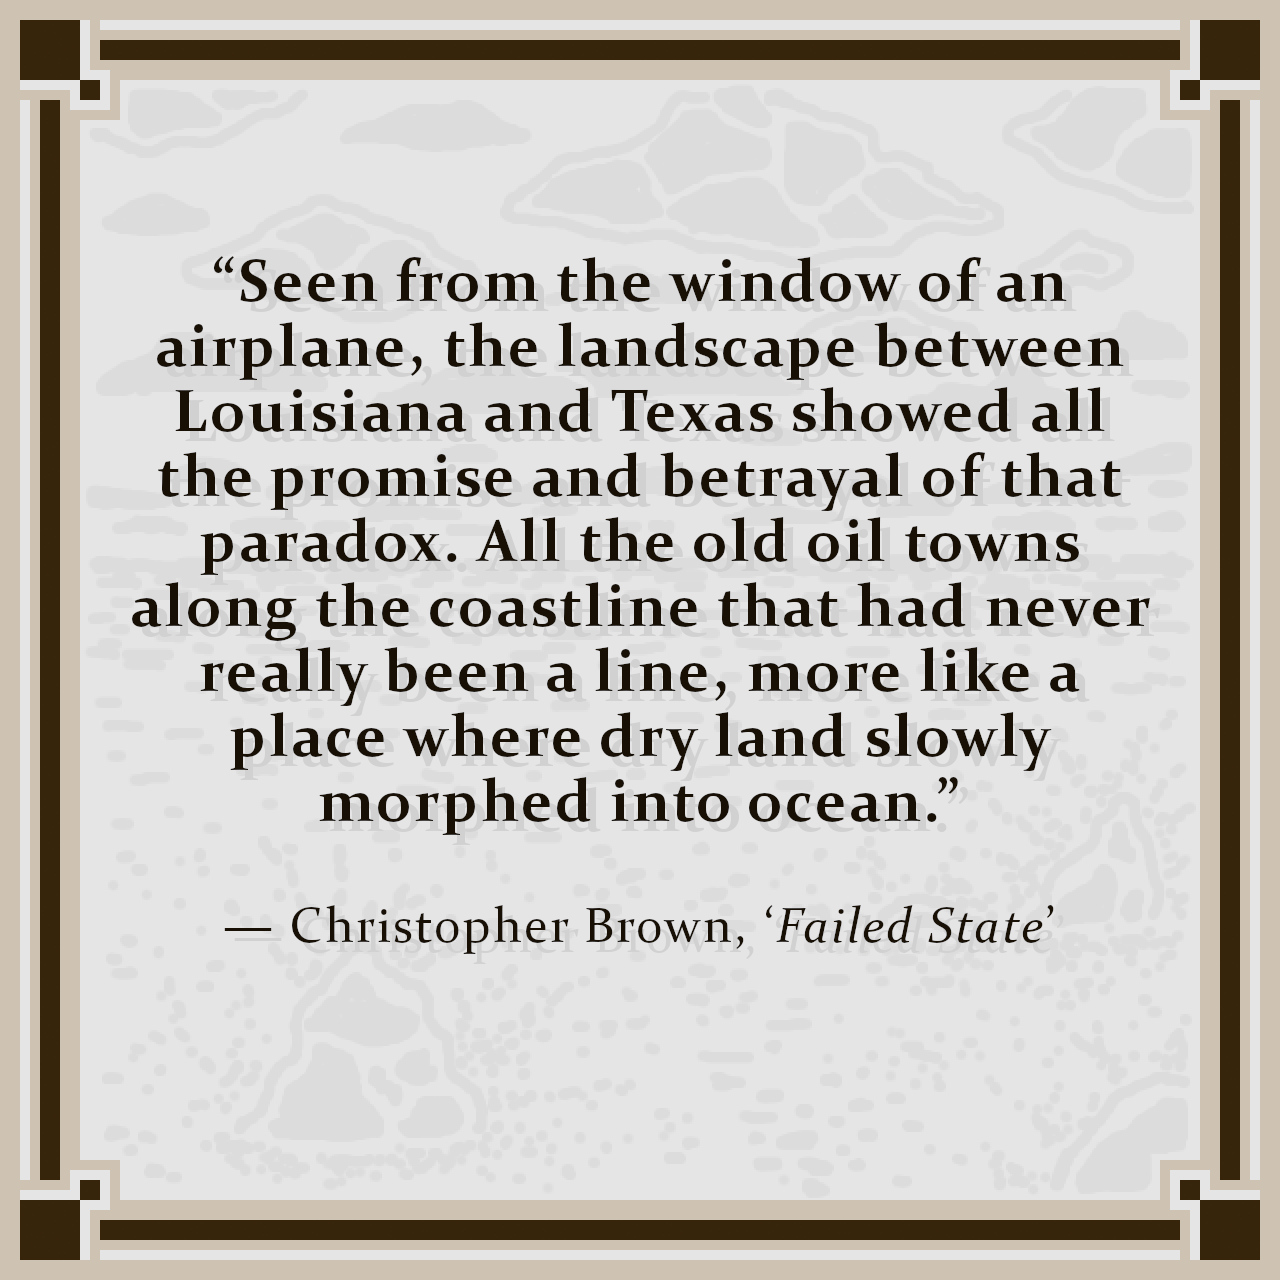 """""""Seen from the window of an airplane, the landscape between Louisiana and Texas showed all the promise and betrayal of that paradox. All the old oil towns along the coastline that had never really been a line, more like a place where dry land slowly morphed into ocean."""" — Christopher Brown, 'Failed State'"""